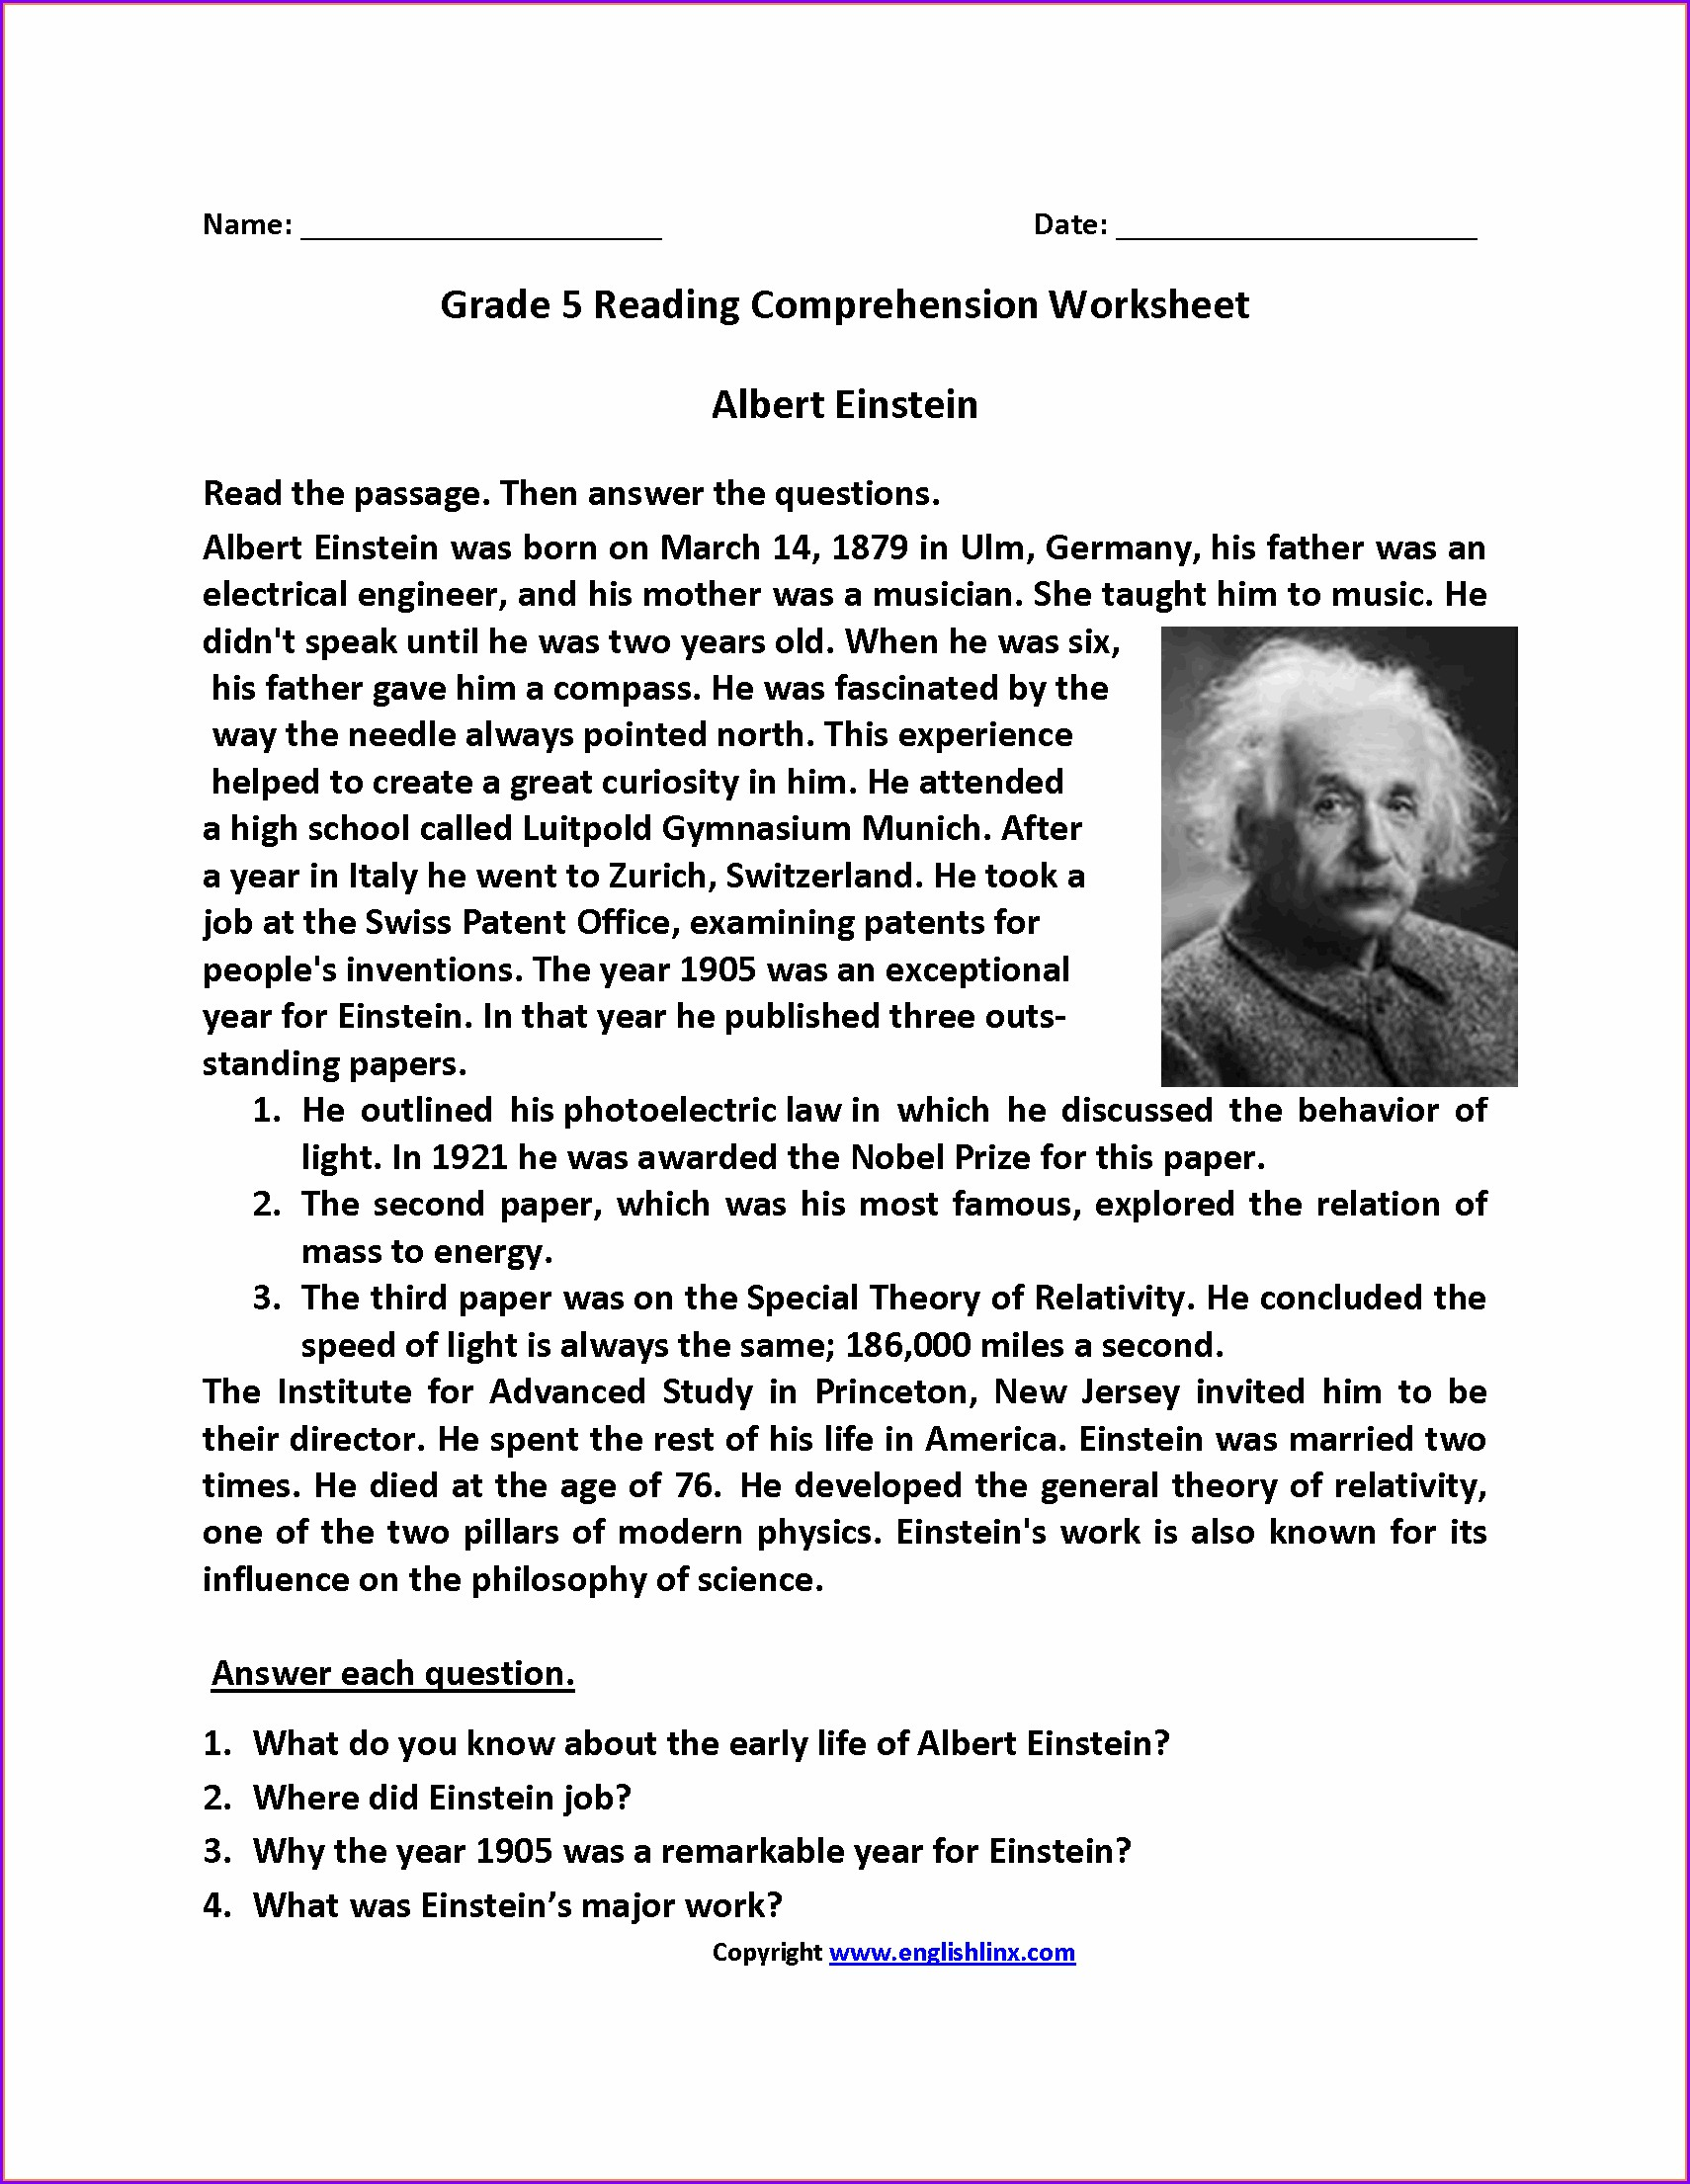 English Comprehension Worksheets For Grade 5 With Answers